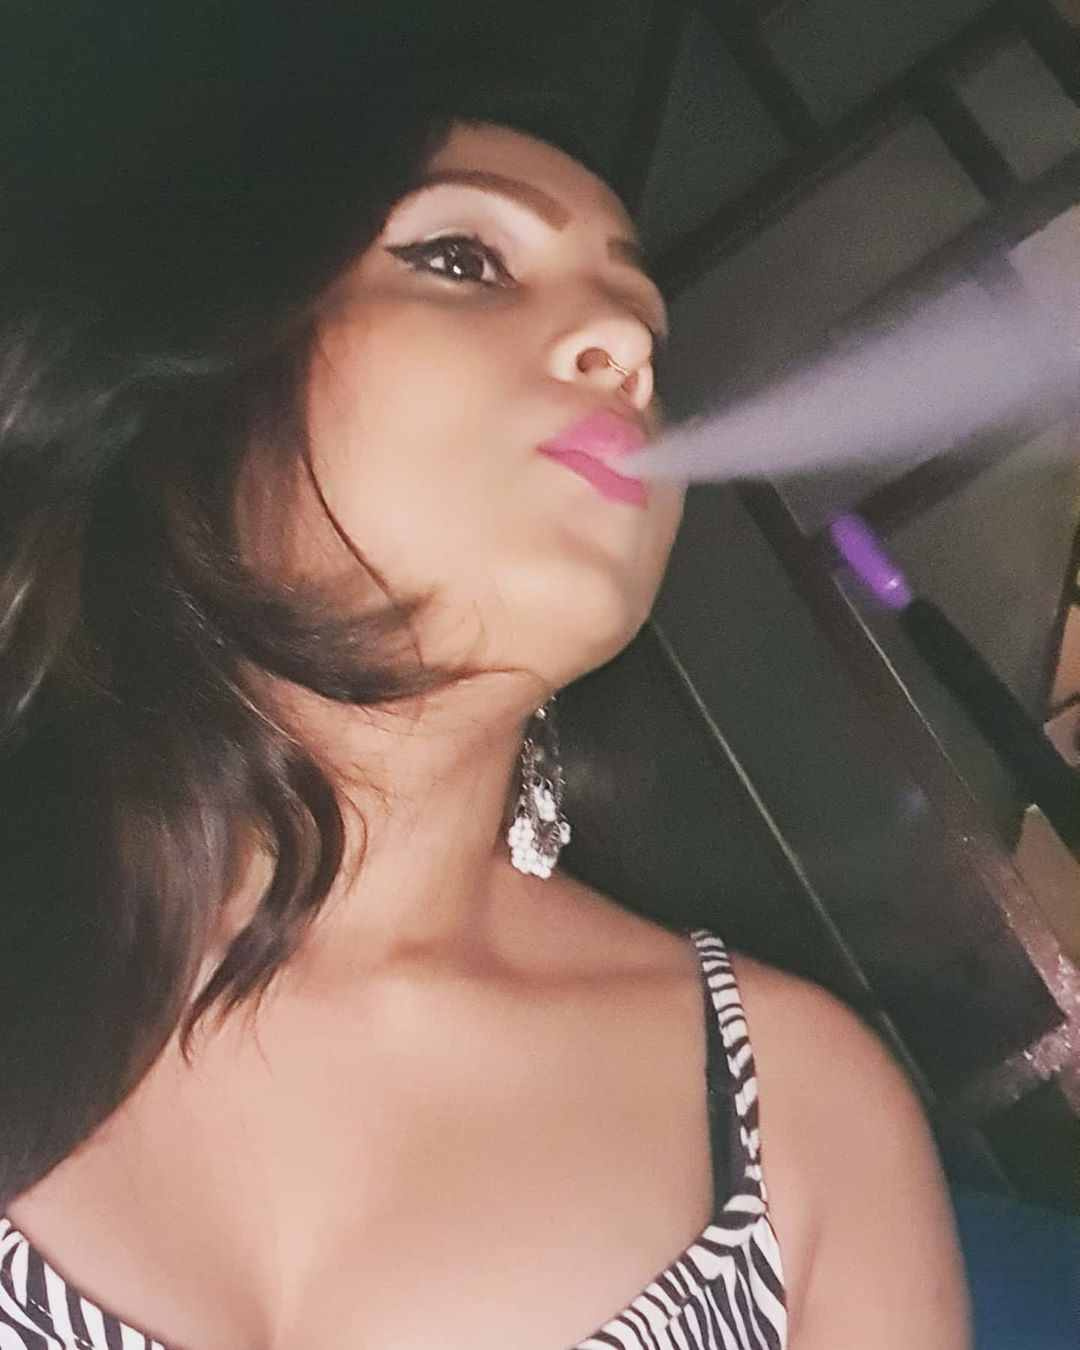 Garima Maurya smoking